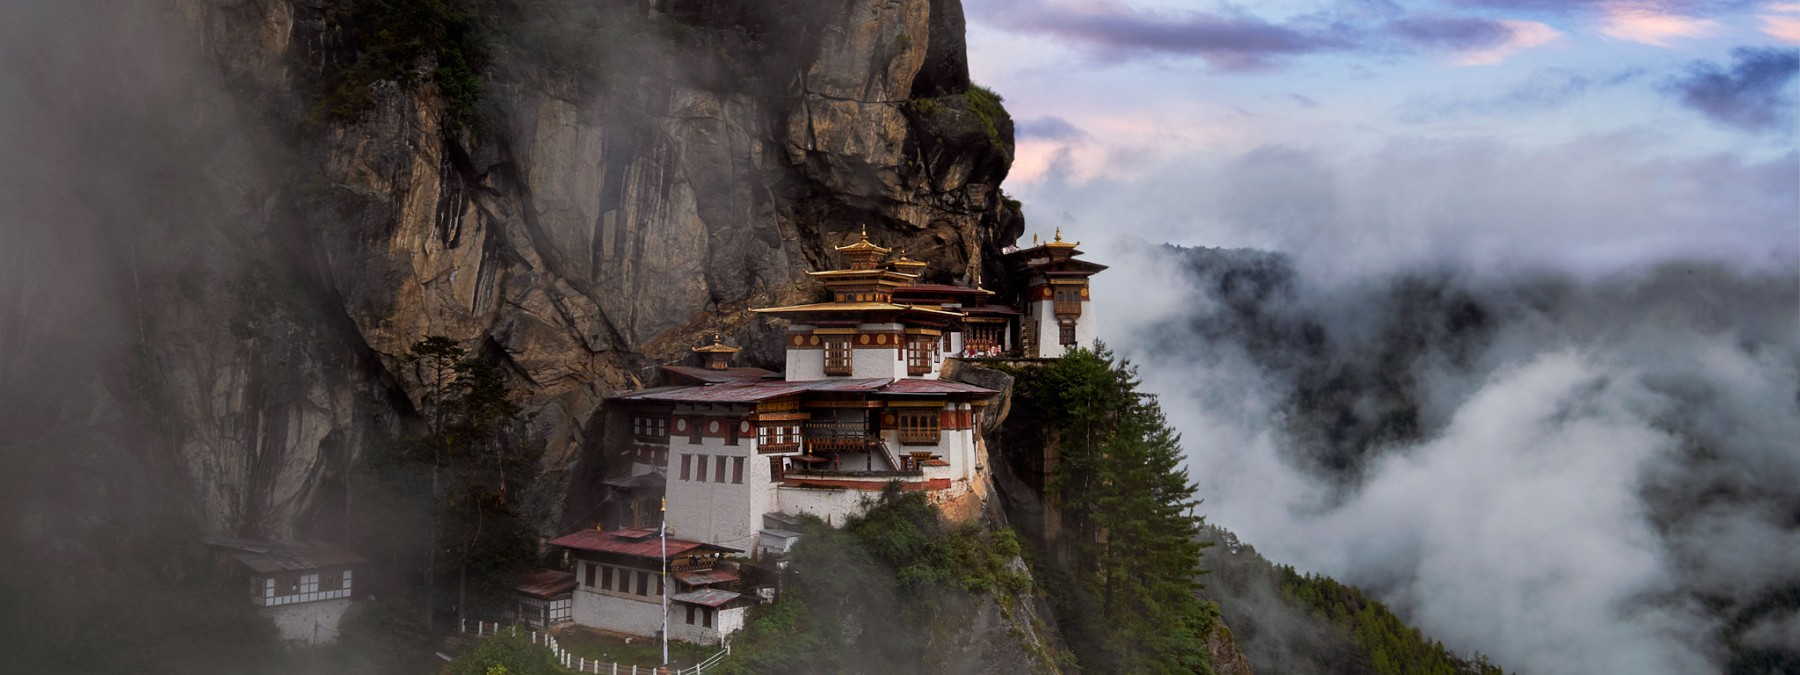 A beautiful twilight in Bhutan as soft fog swirls around the stunning structure of the Tigers Nest Monastery.